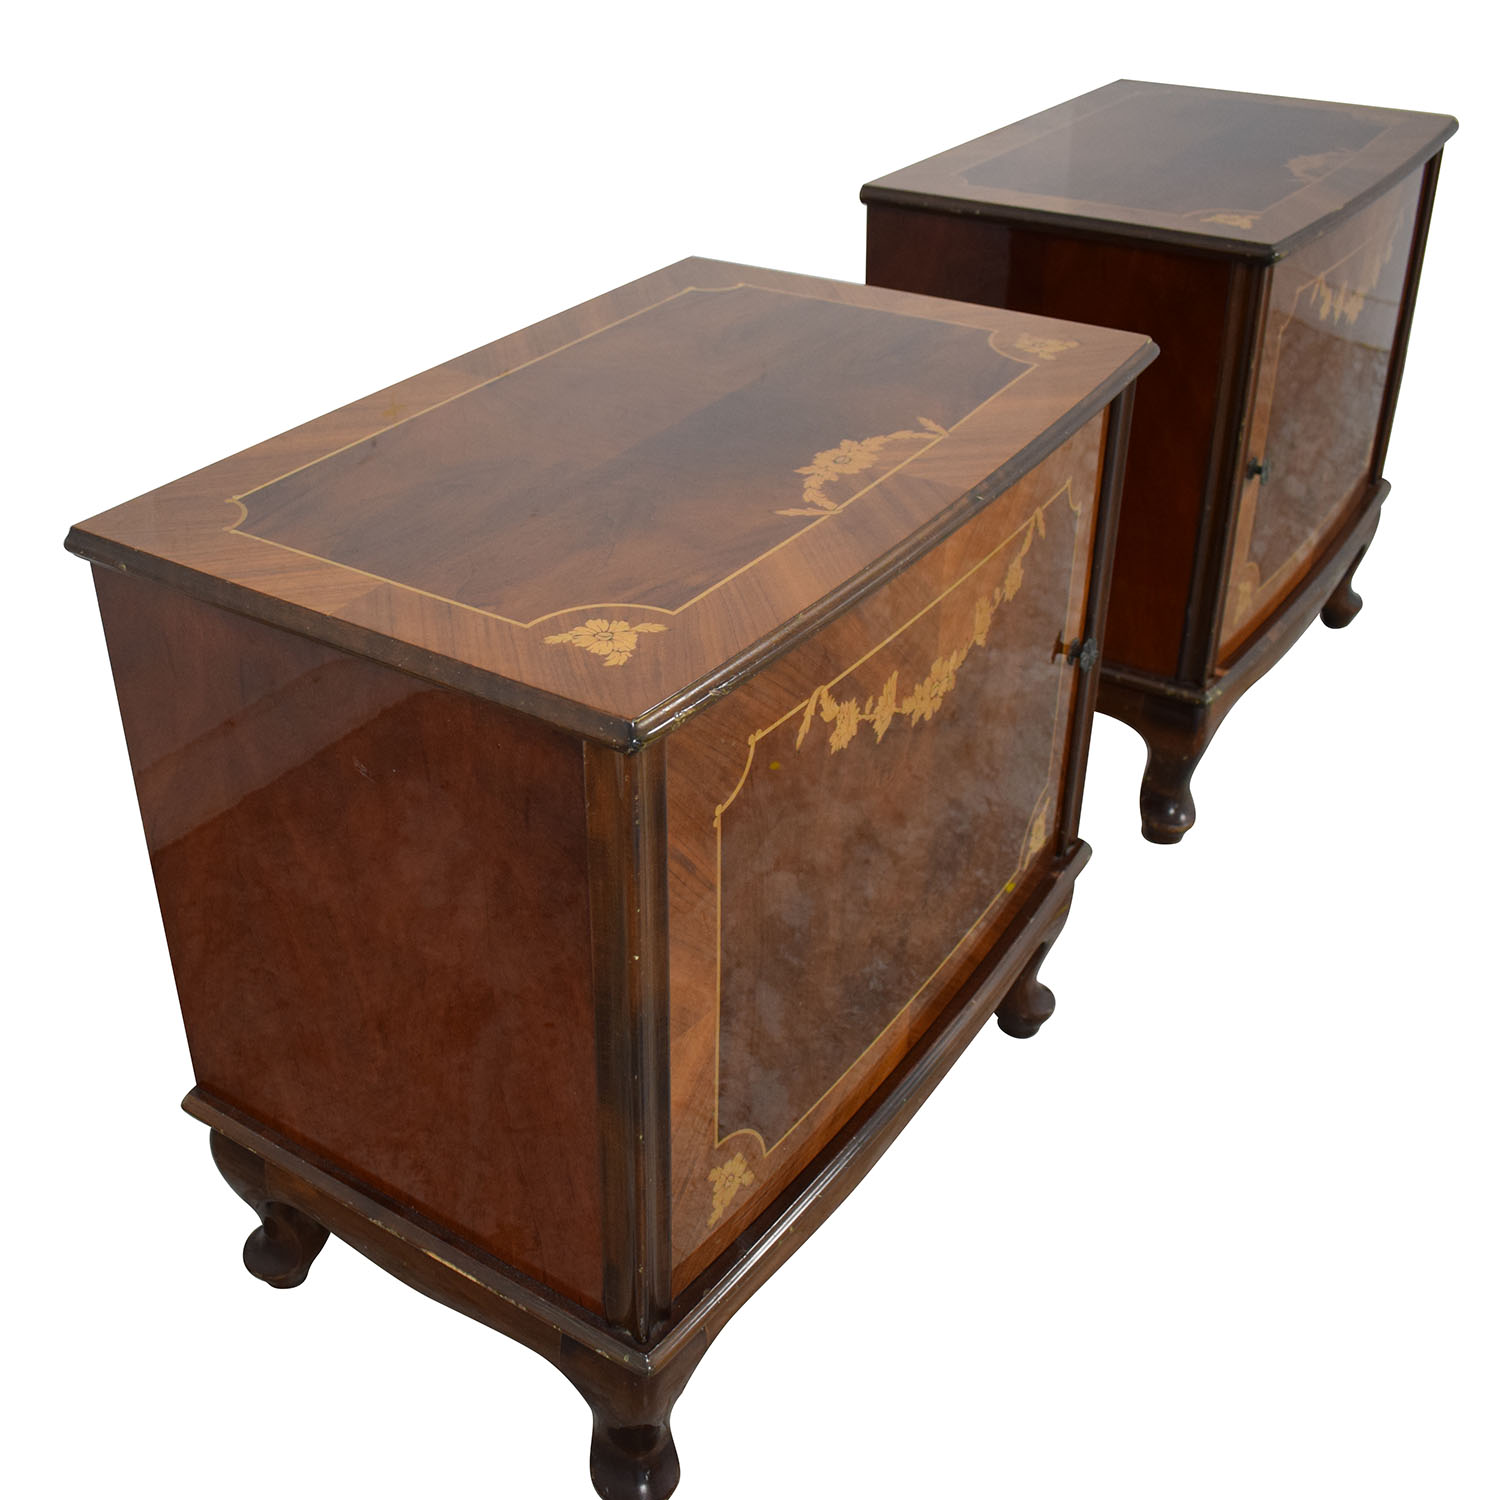 Roma Furniture Nighstands used